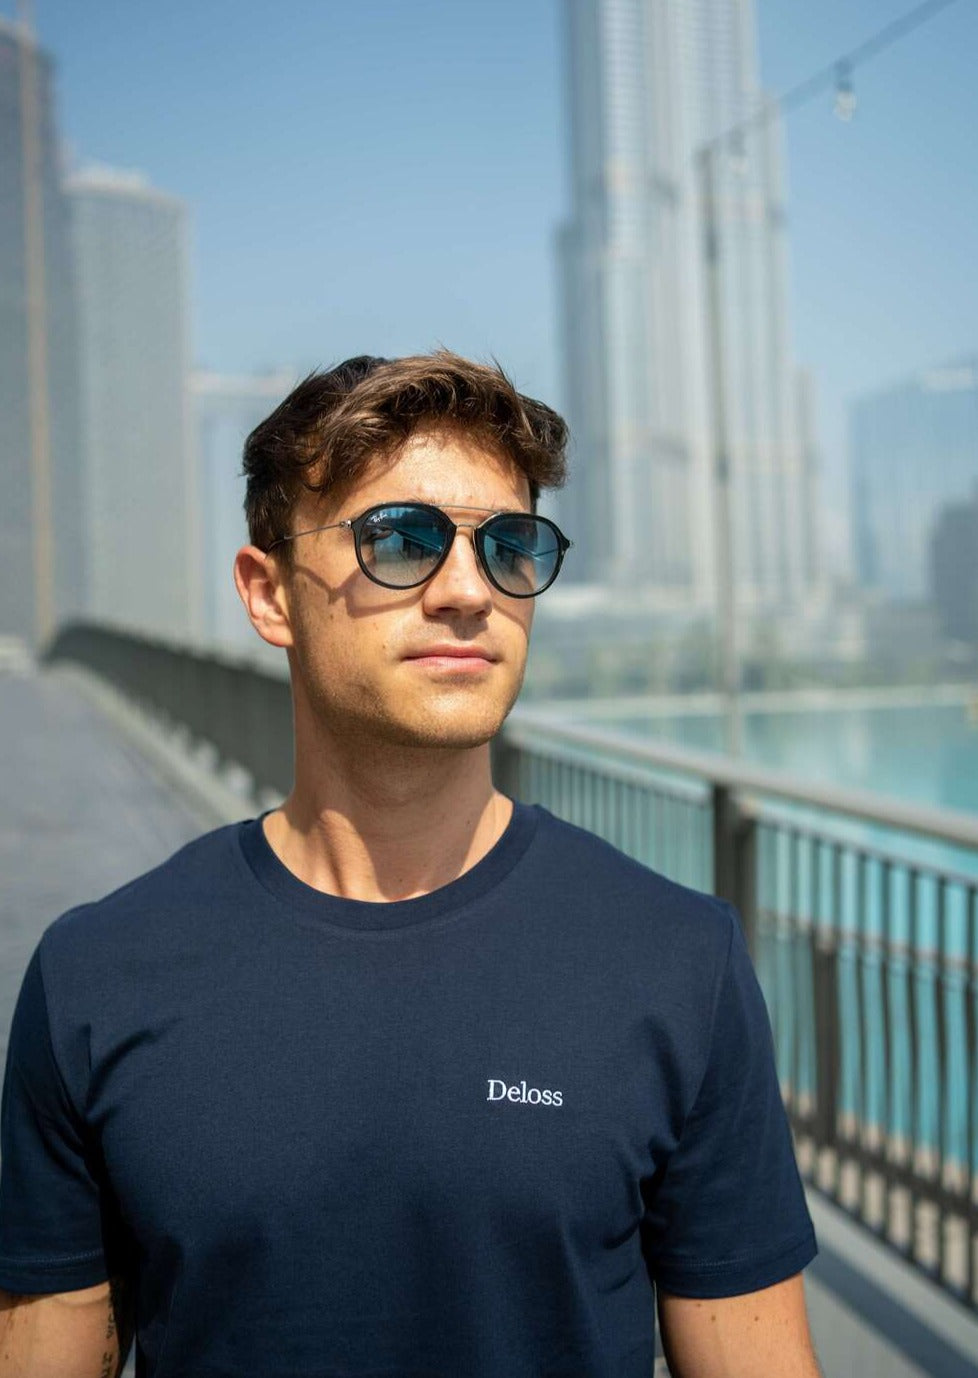 Deloss Summer Collection T-Shirt - Blau